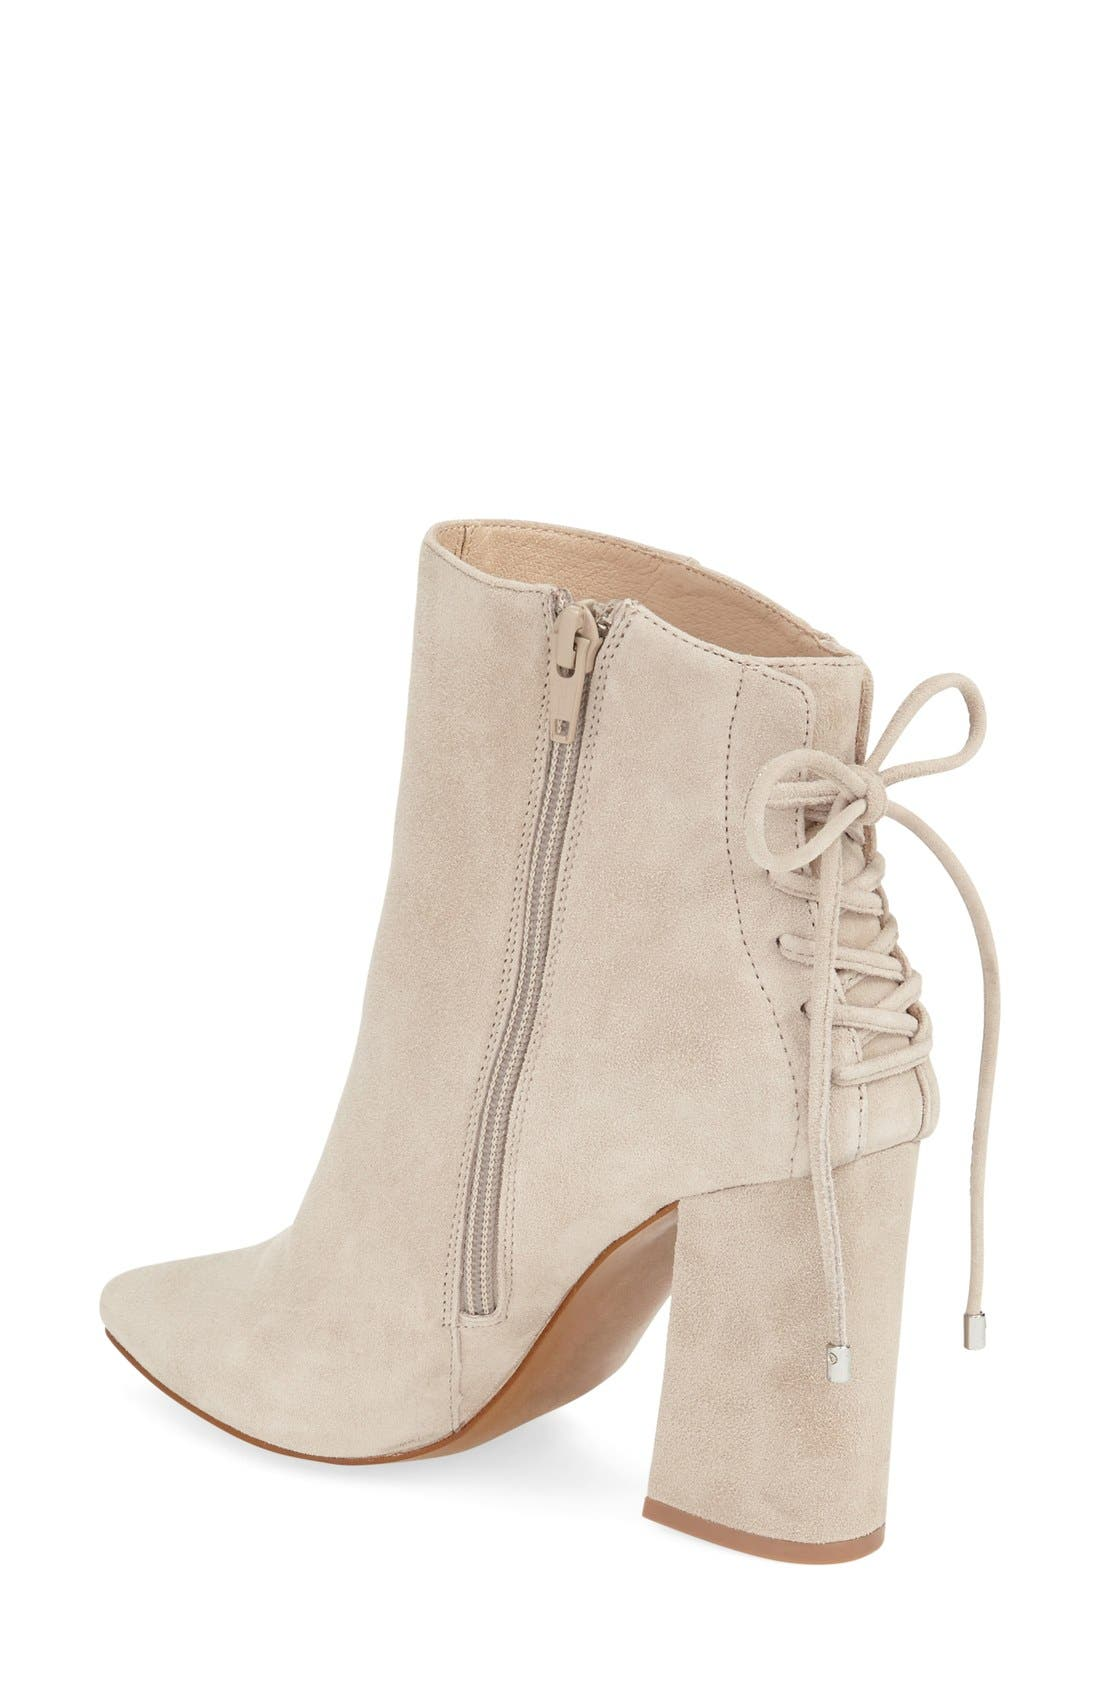 'Siren' Pointy Toe Bootie,                             Alternate thumbnail 5, color,